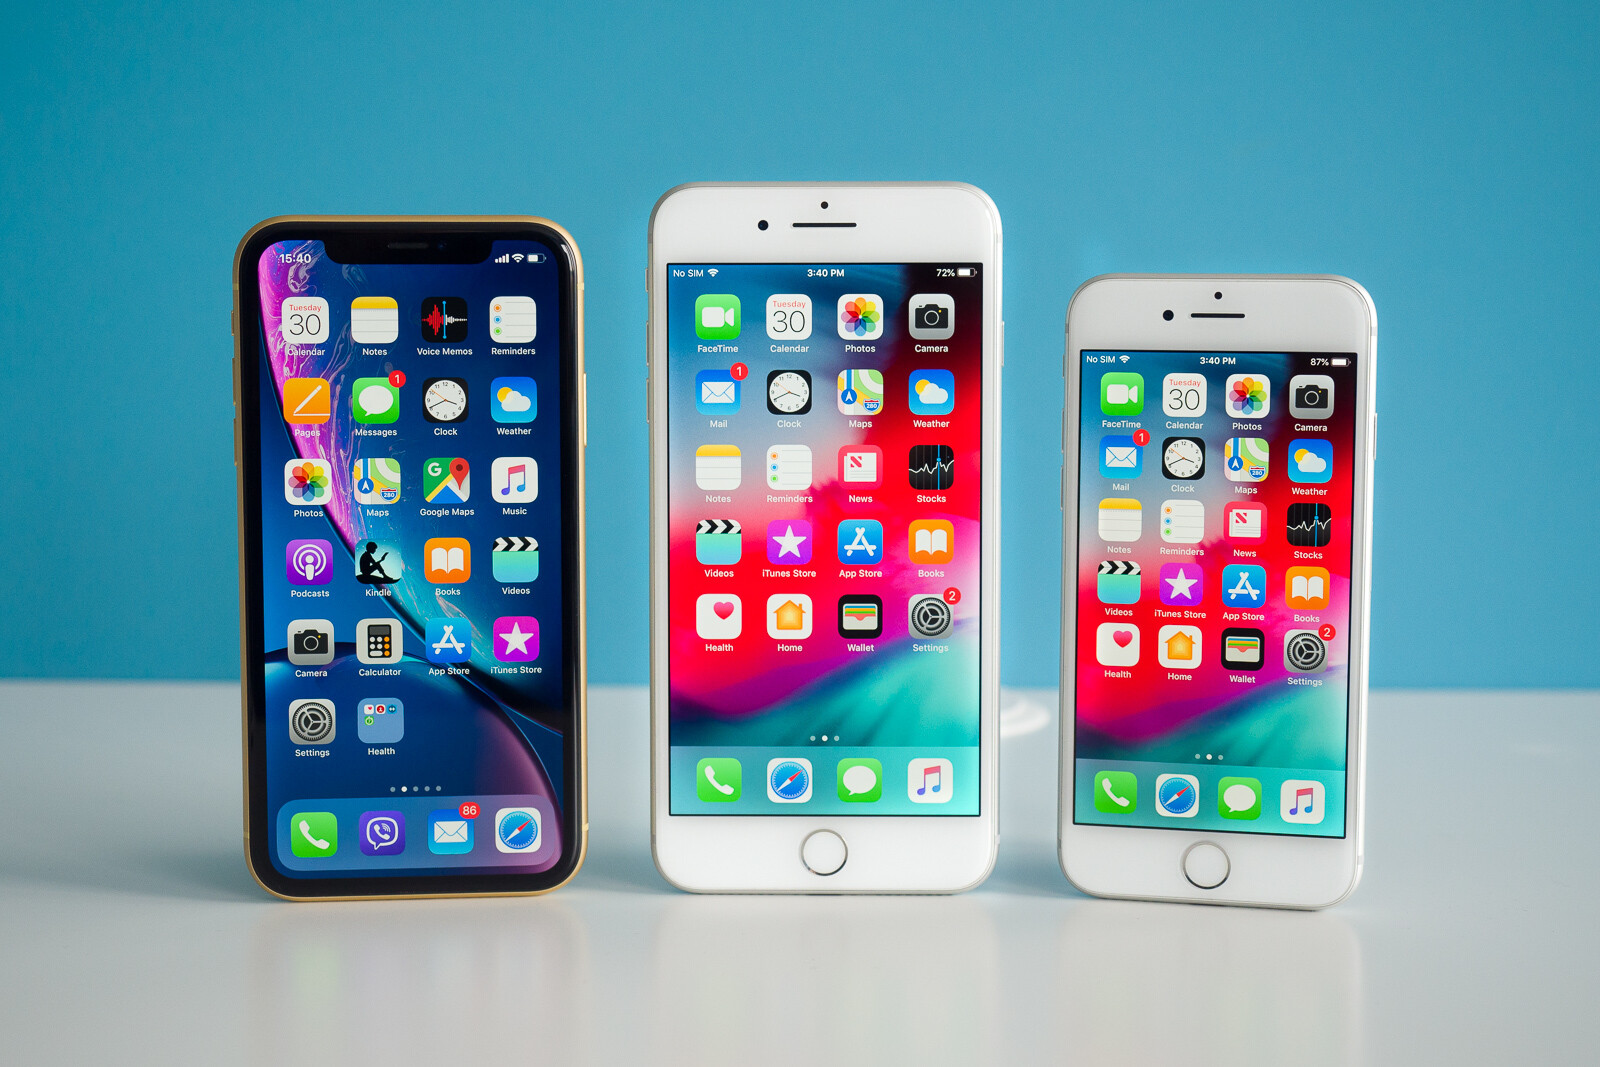 Apple's iPhone XR was the best-selling iPhone in the US last